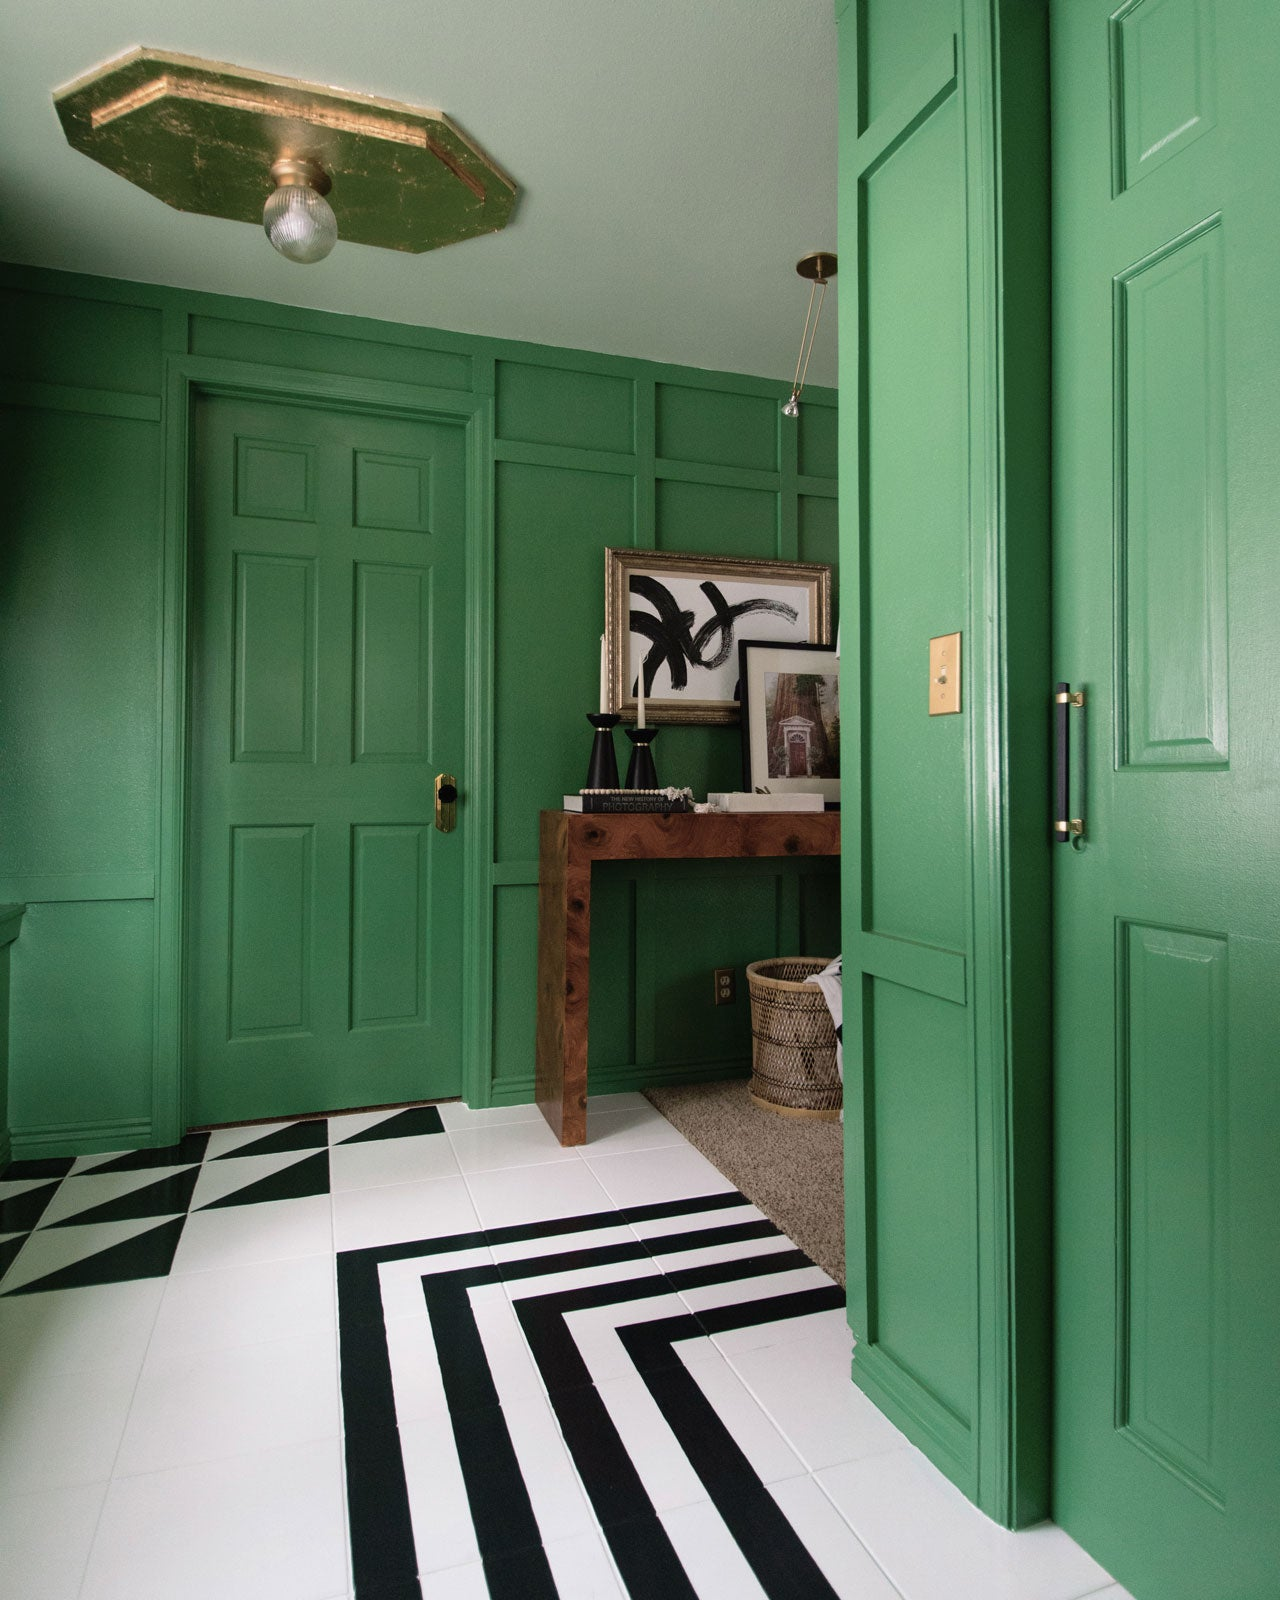 A Matcha green entryway painted in Matcha Latte by Clare. Get inspired with stylish entryway ideas to make a bold statement and welcome guests in style!